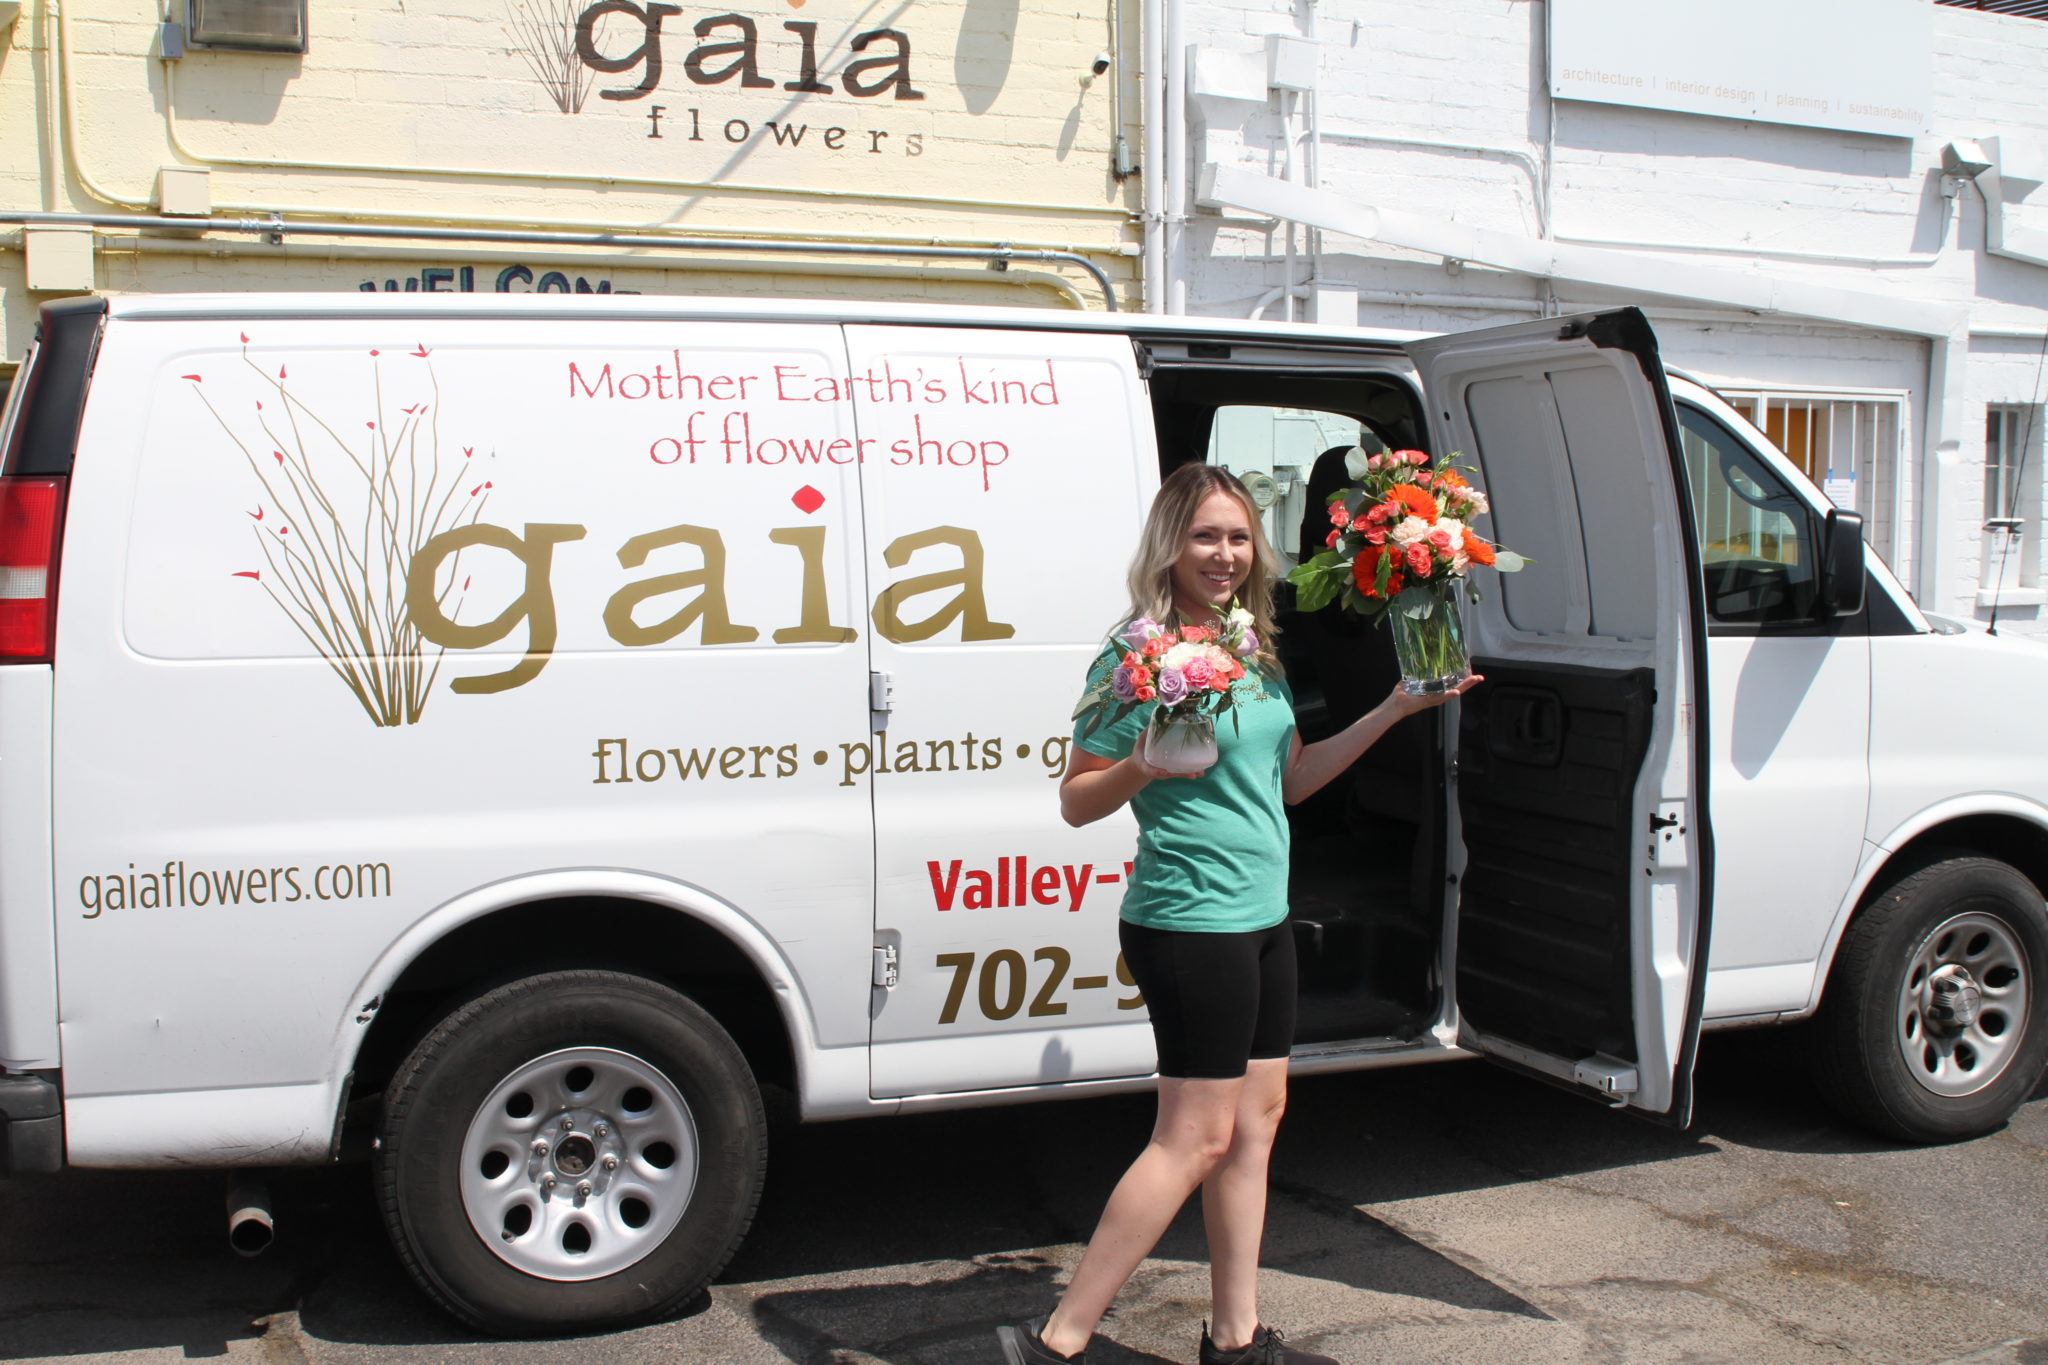 Lauren stands near Gaia Flowers van ready to deliver flower subscriptions.